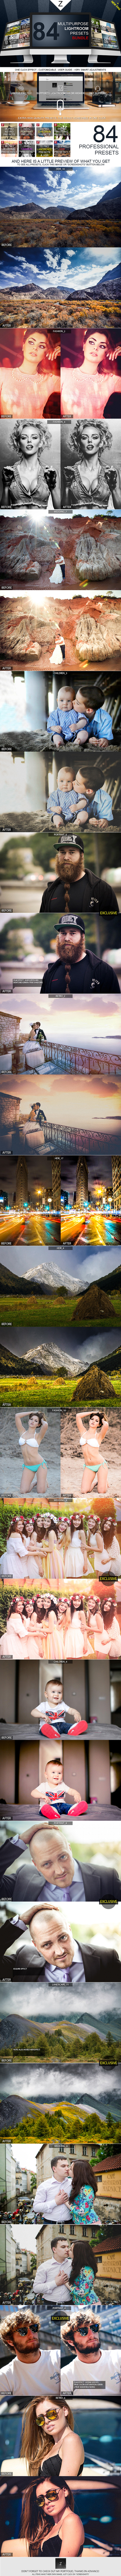 GraphicRiver 84 Lightroom Presets Bundle 10800930